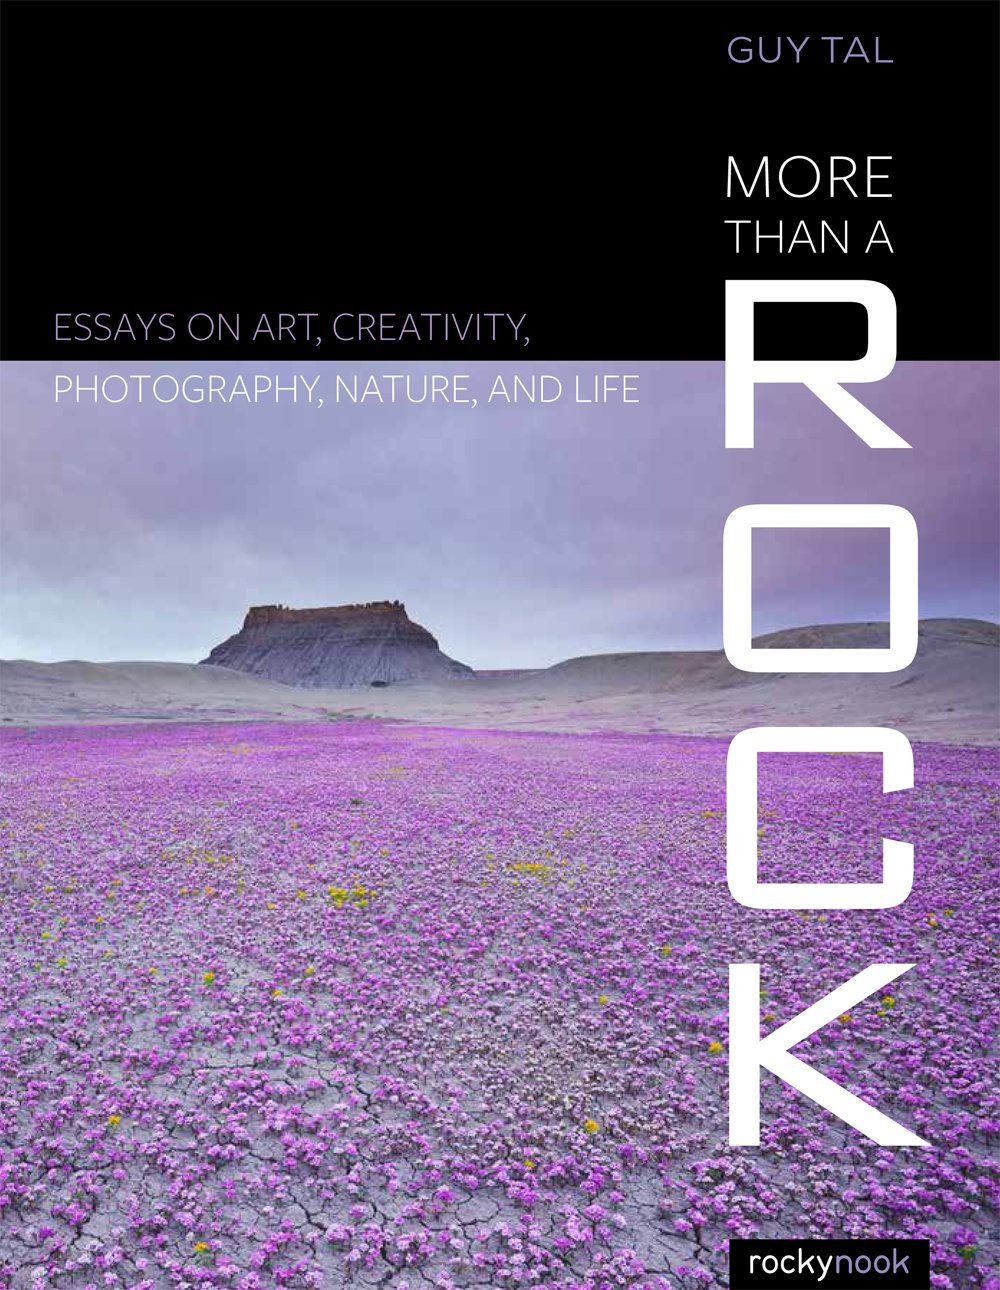 more than a rock essays on art creativity photography nature more than a rock essays on art creativity photography nature and life guy tal 9781937538828 books ca